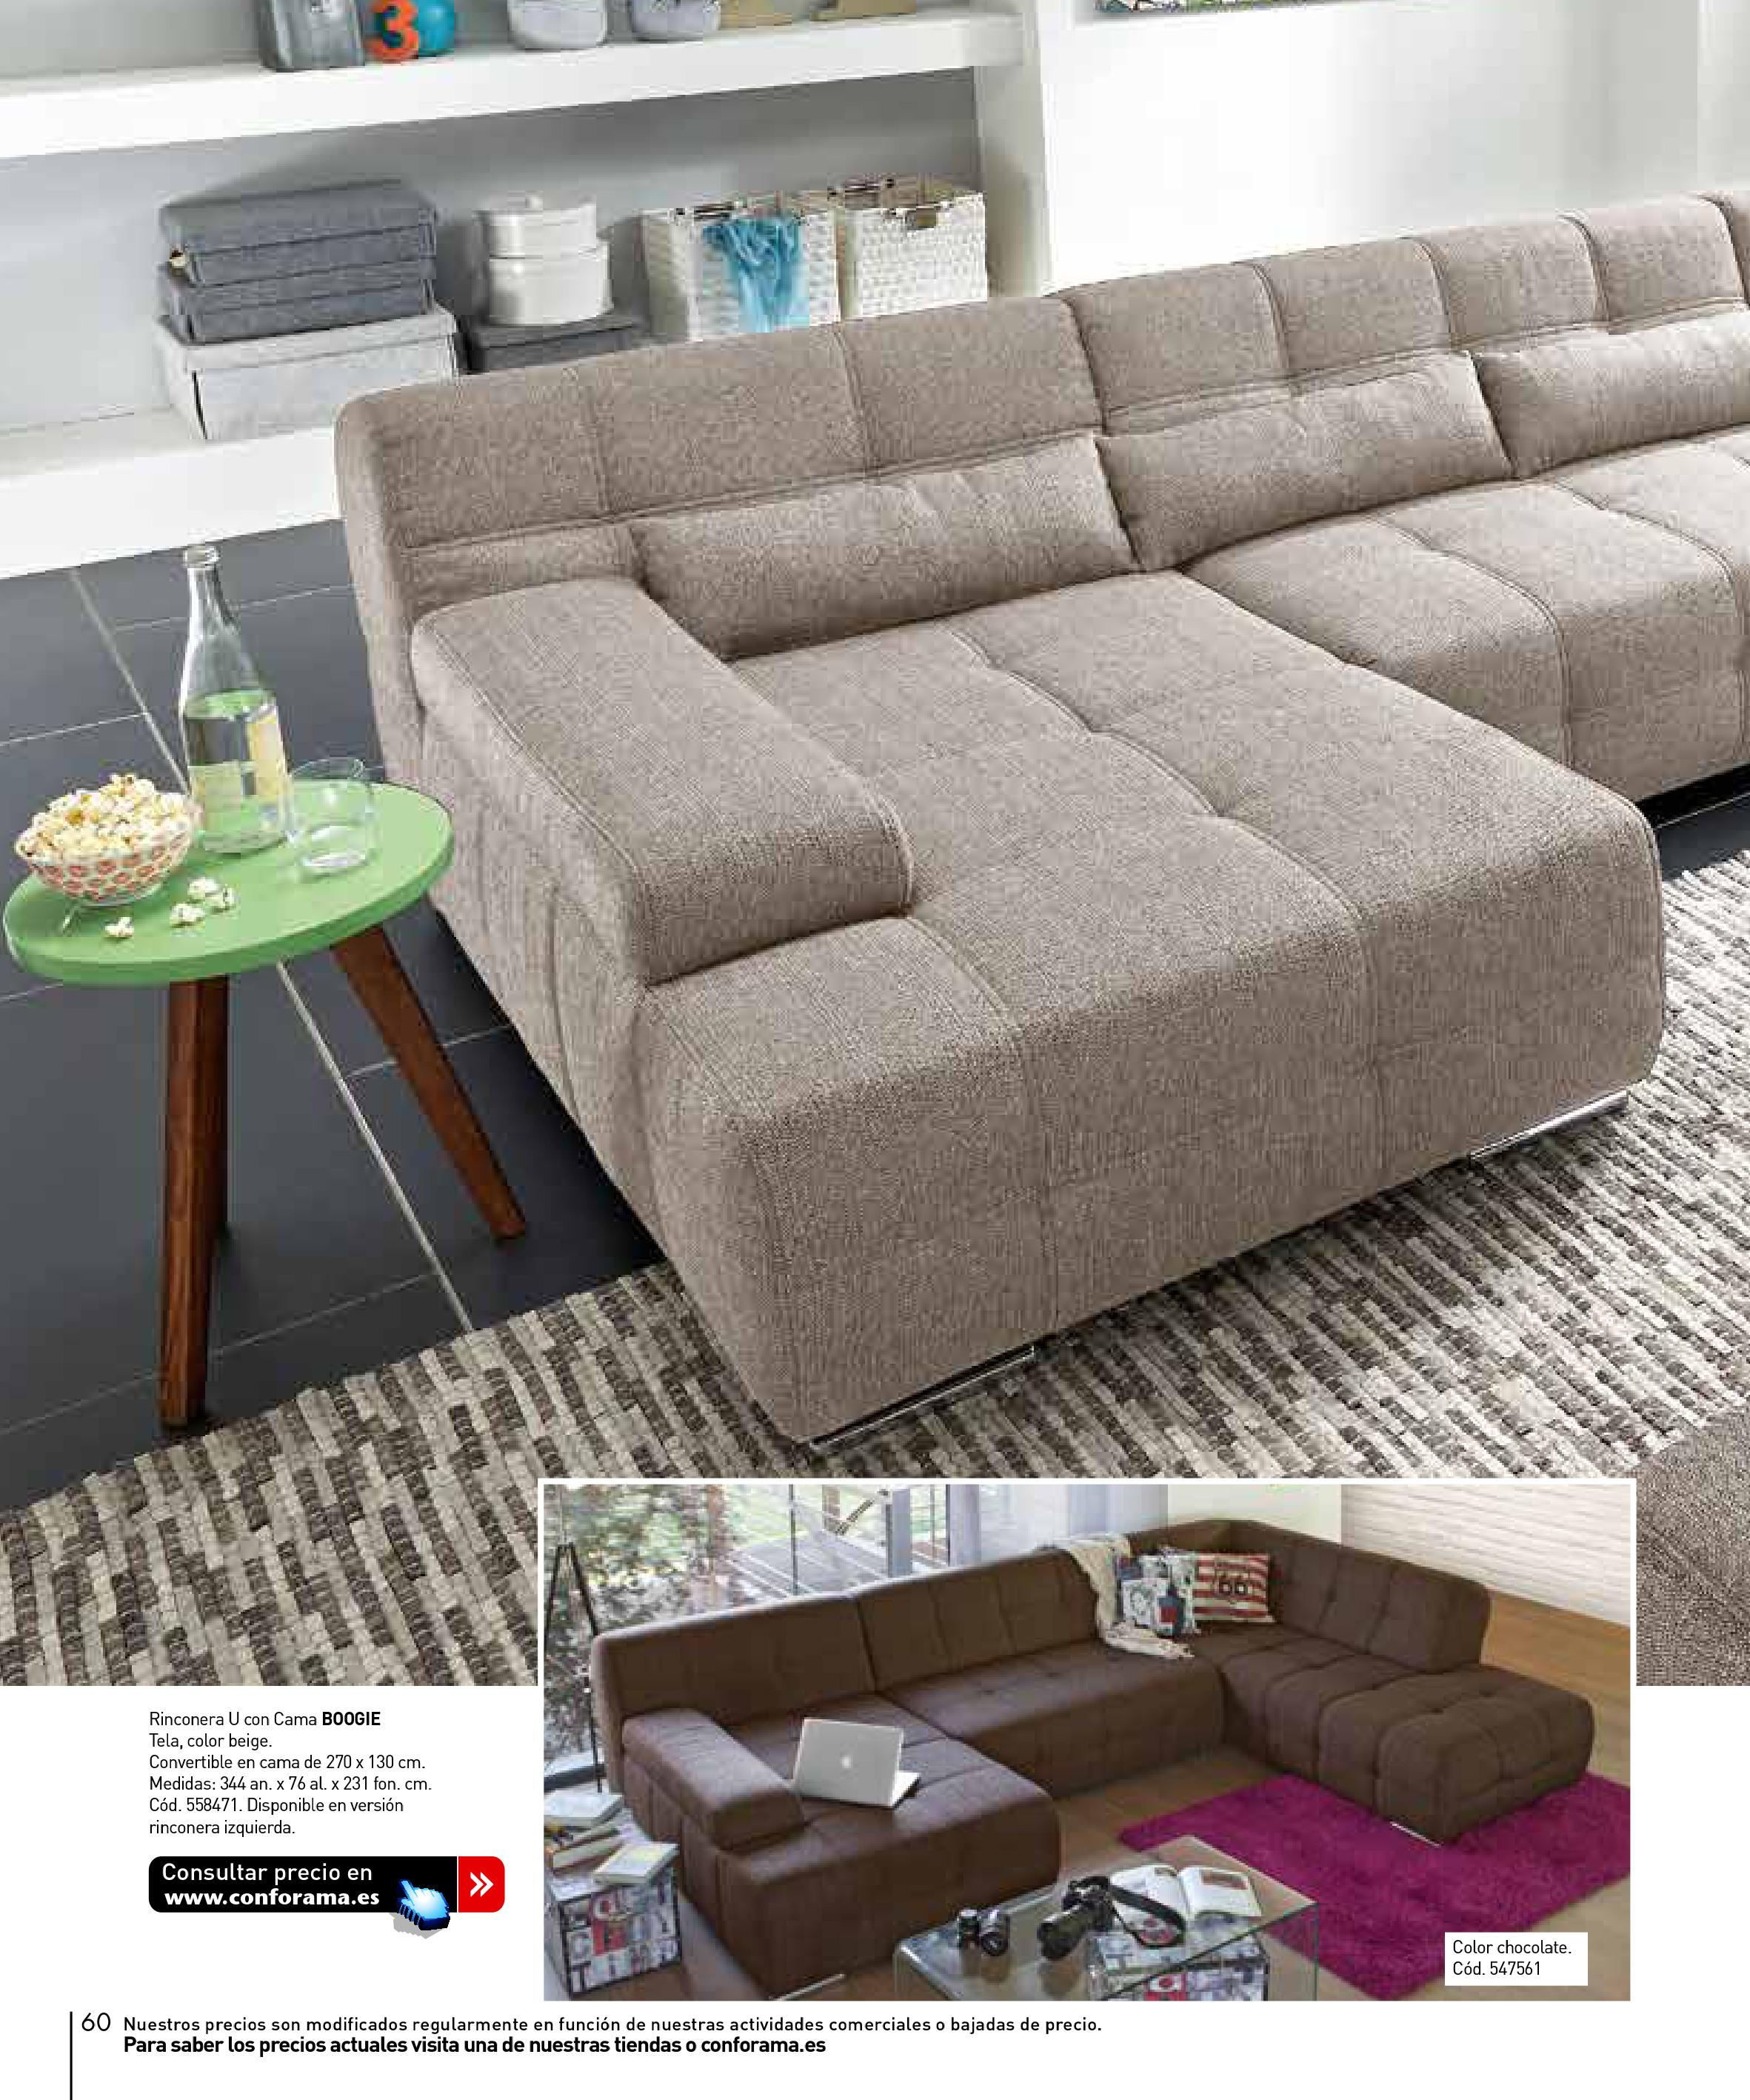 Sofas conforama 201560 for Sofas conforama catalogo